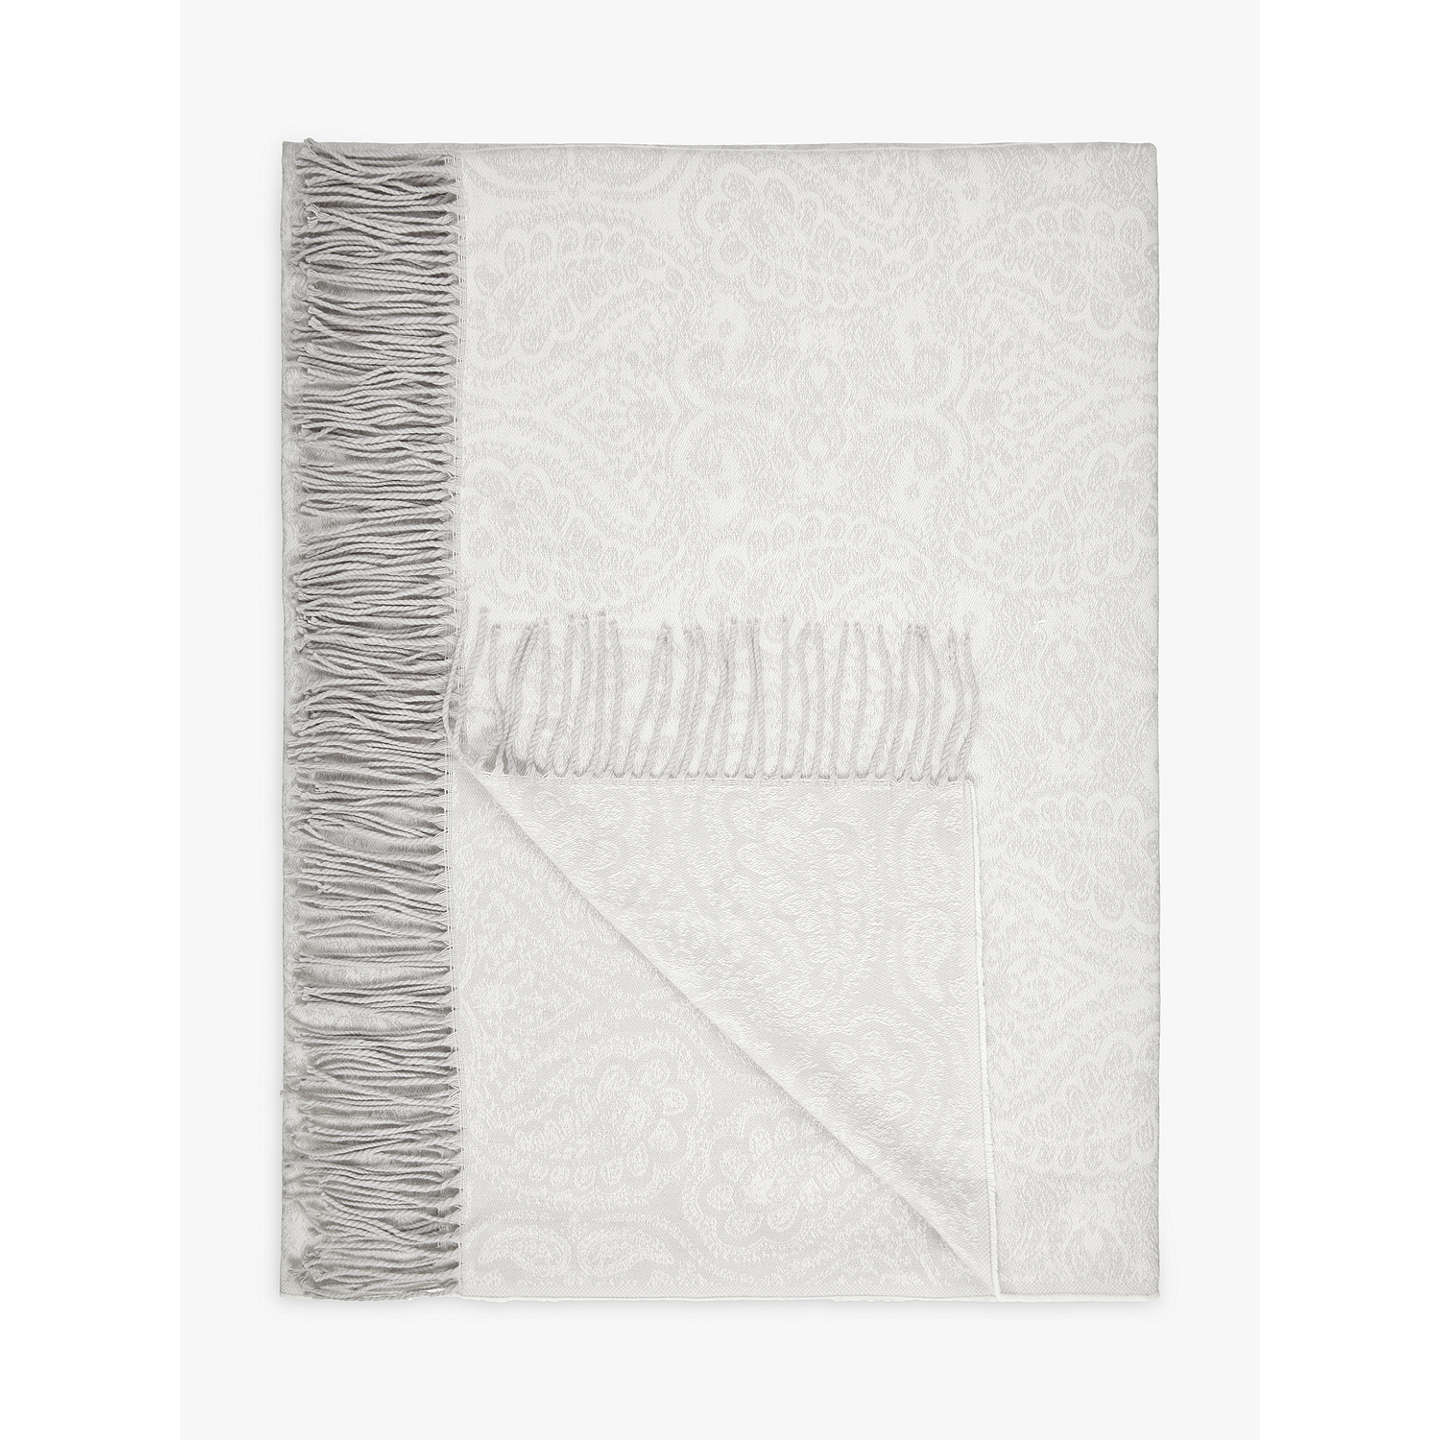 BuyJohn Lewis Paisley Weave Throw, White Online at johnlewis.com